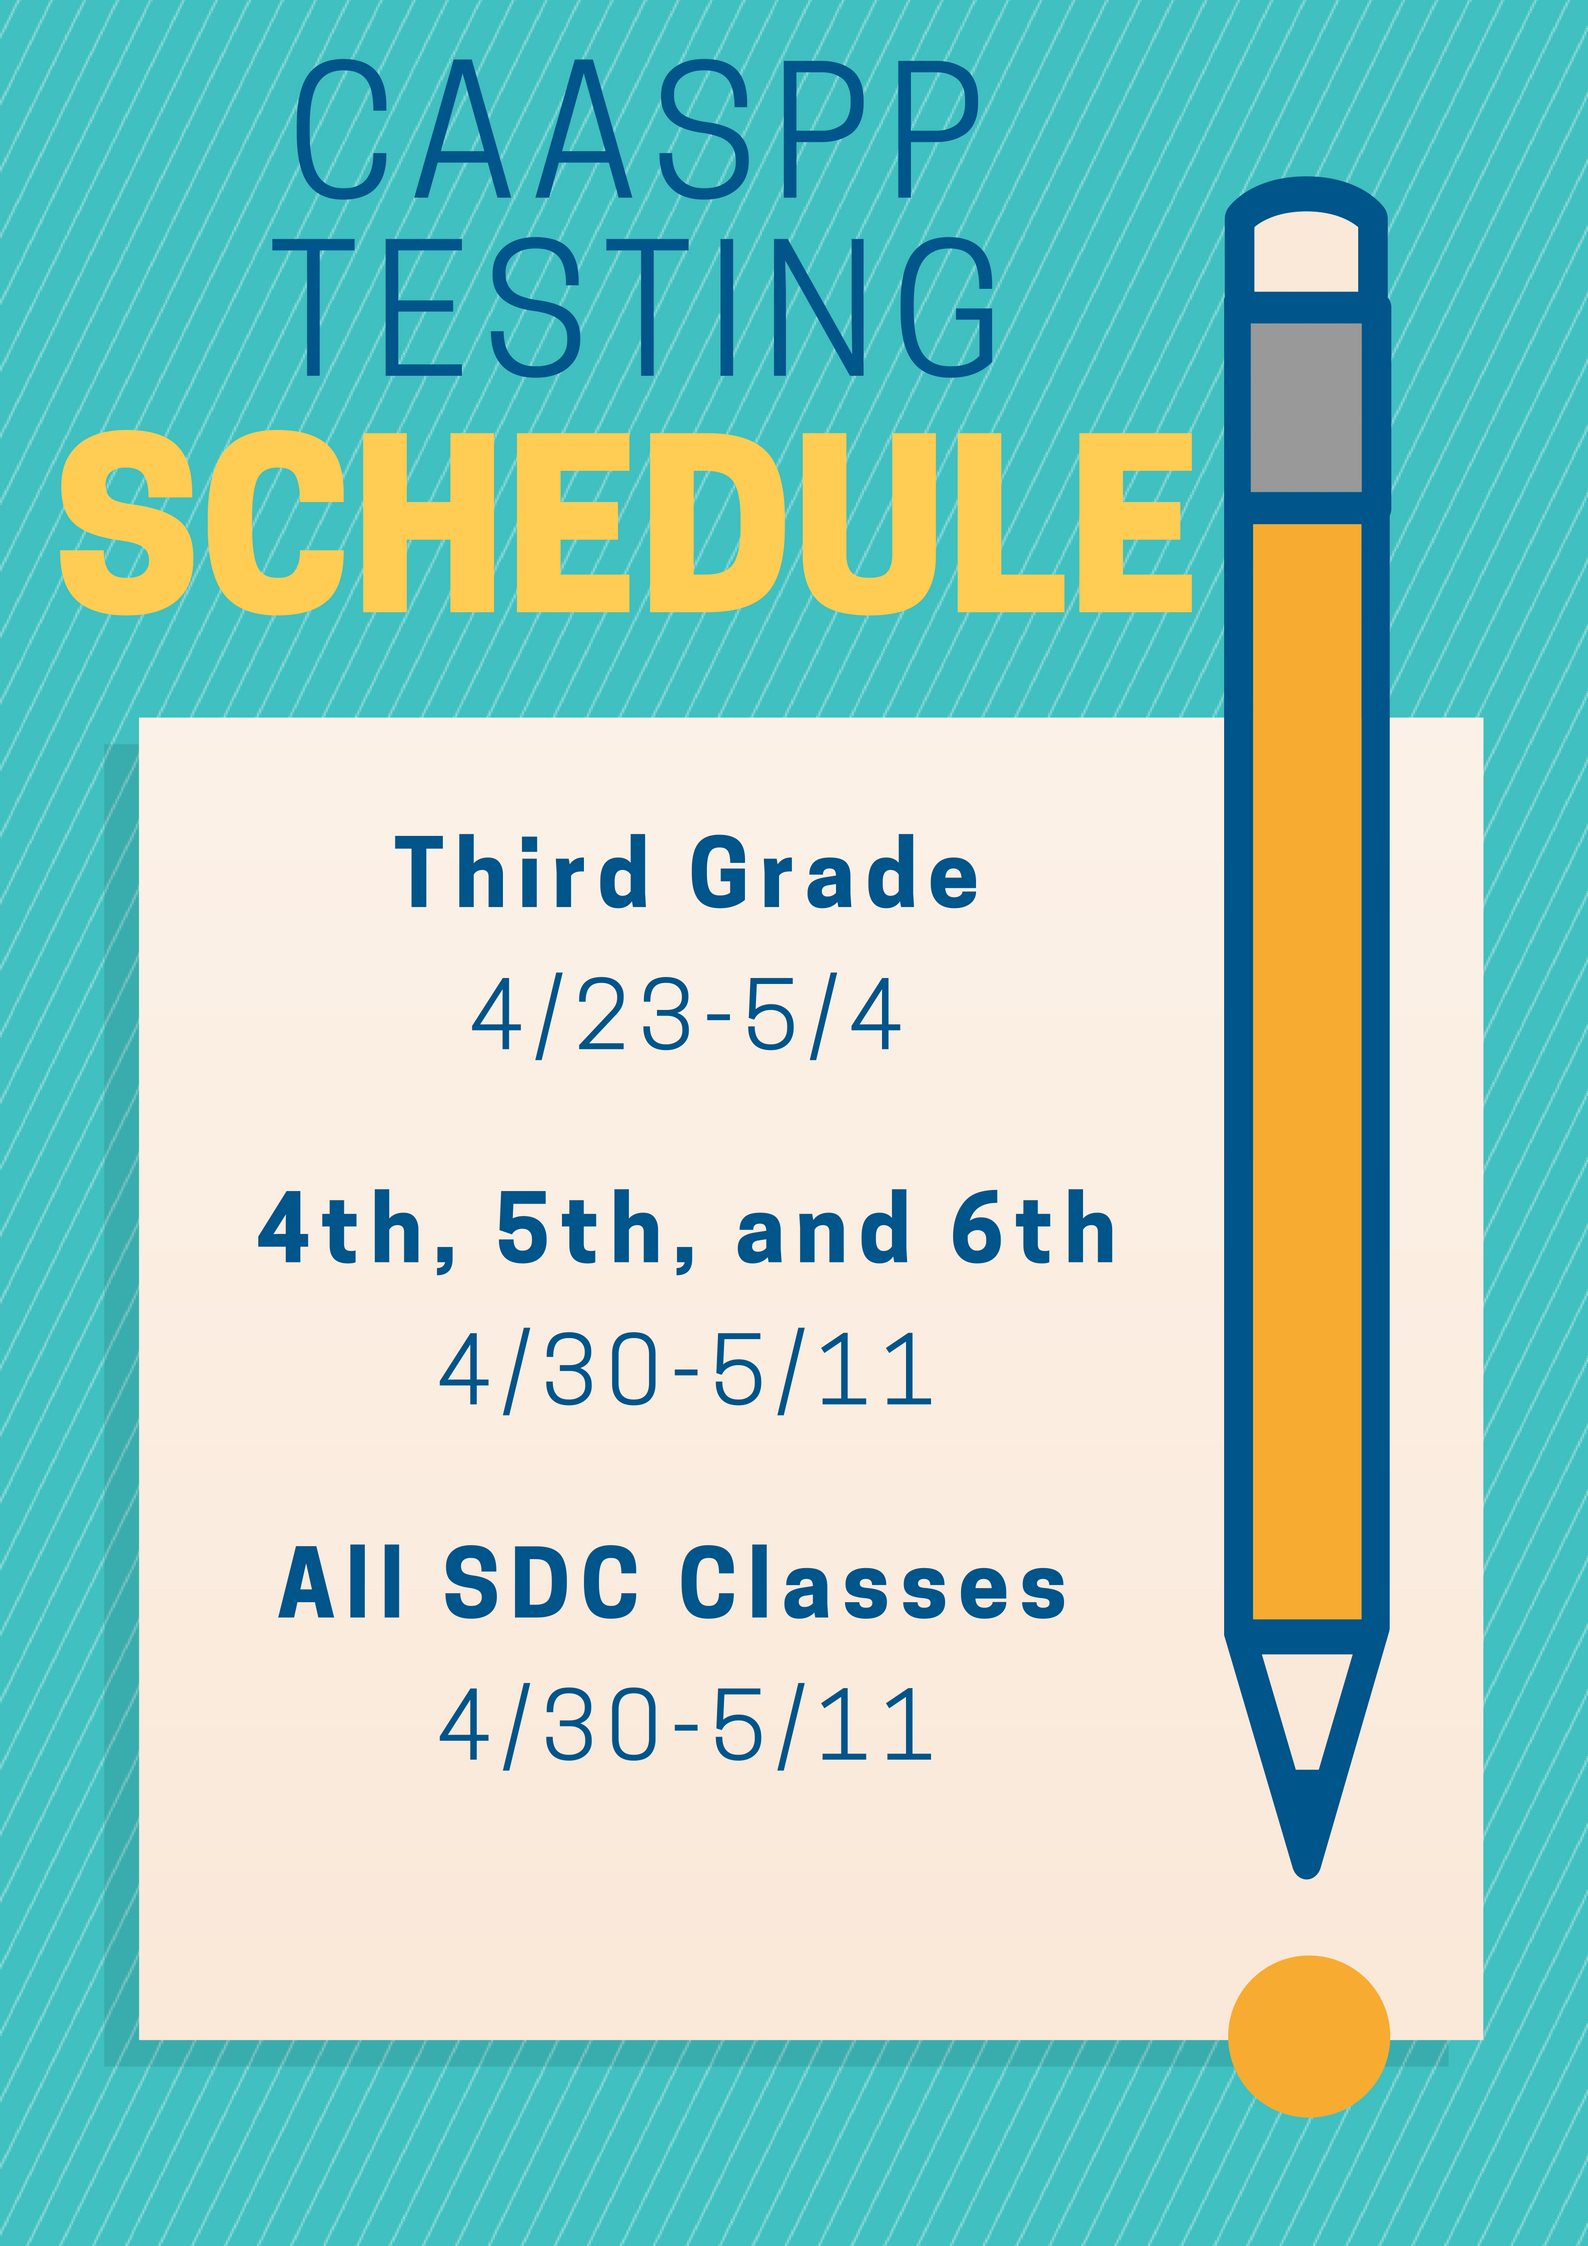 Testing Schedule for Grades 3-6